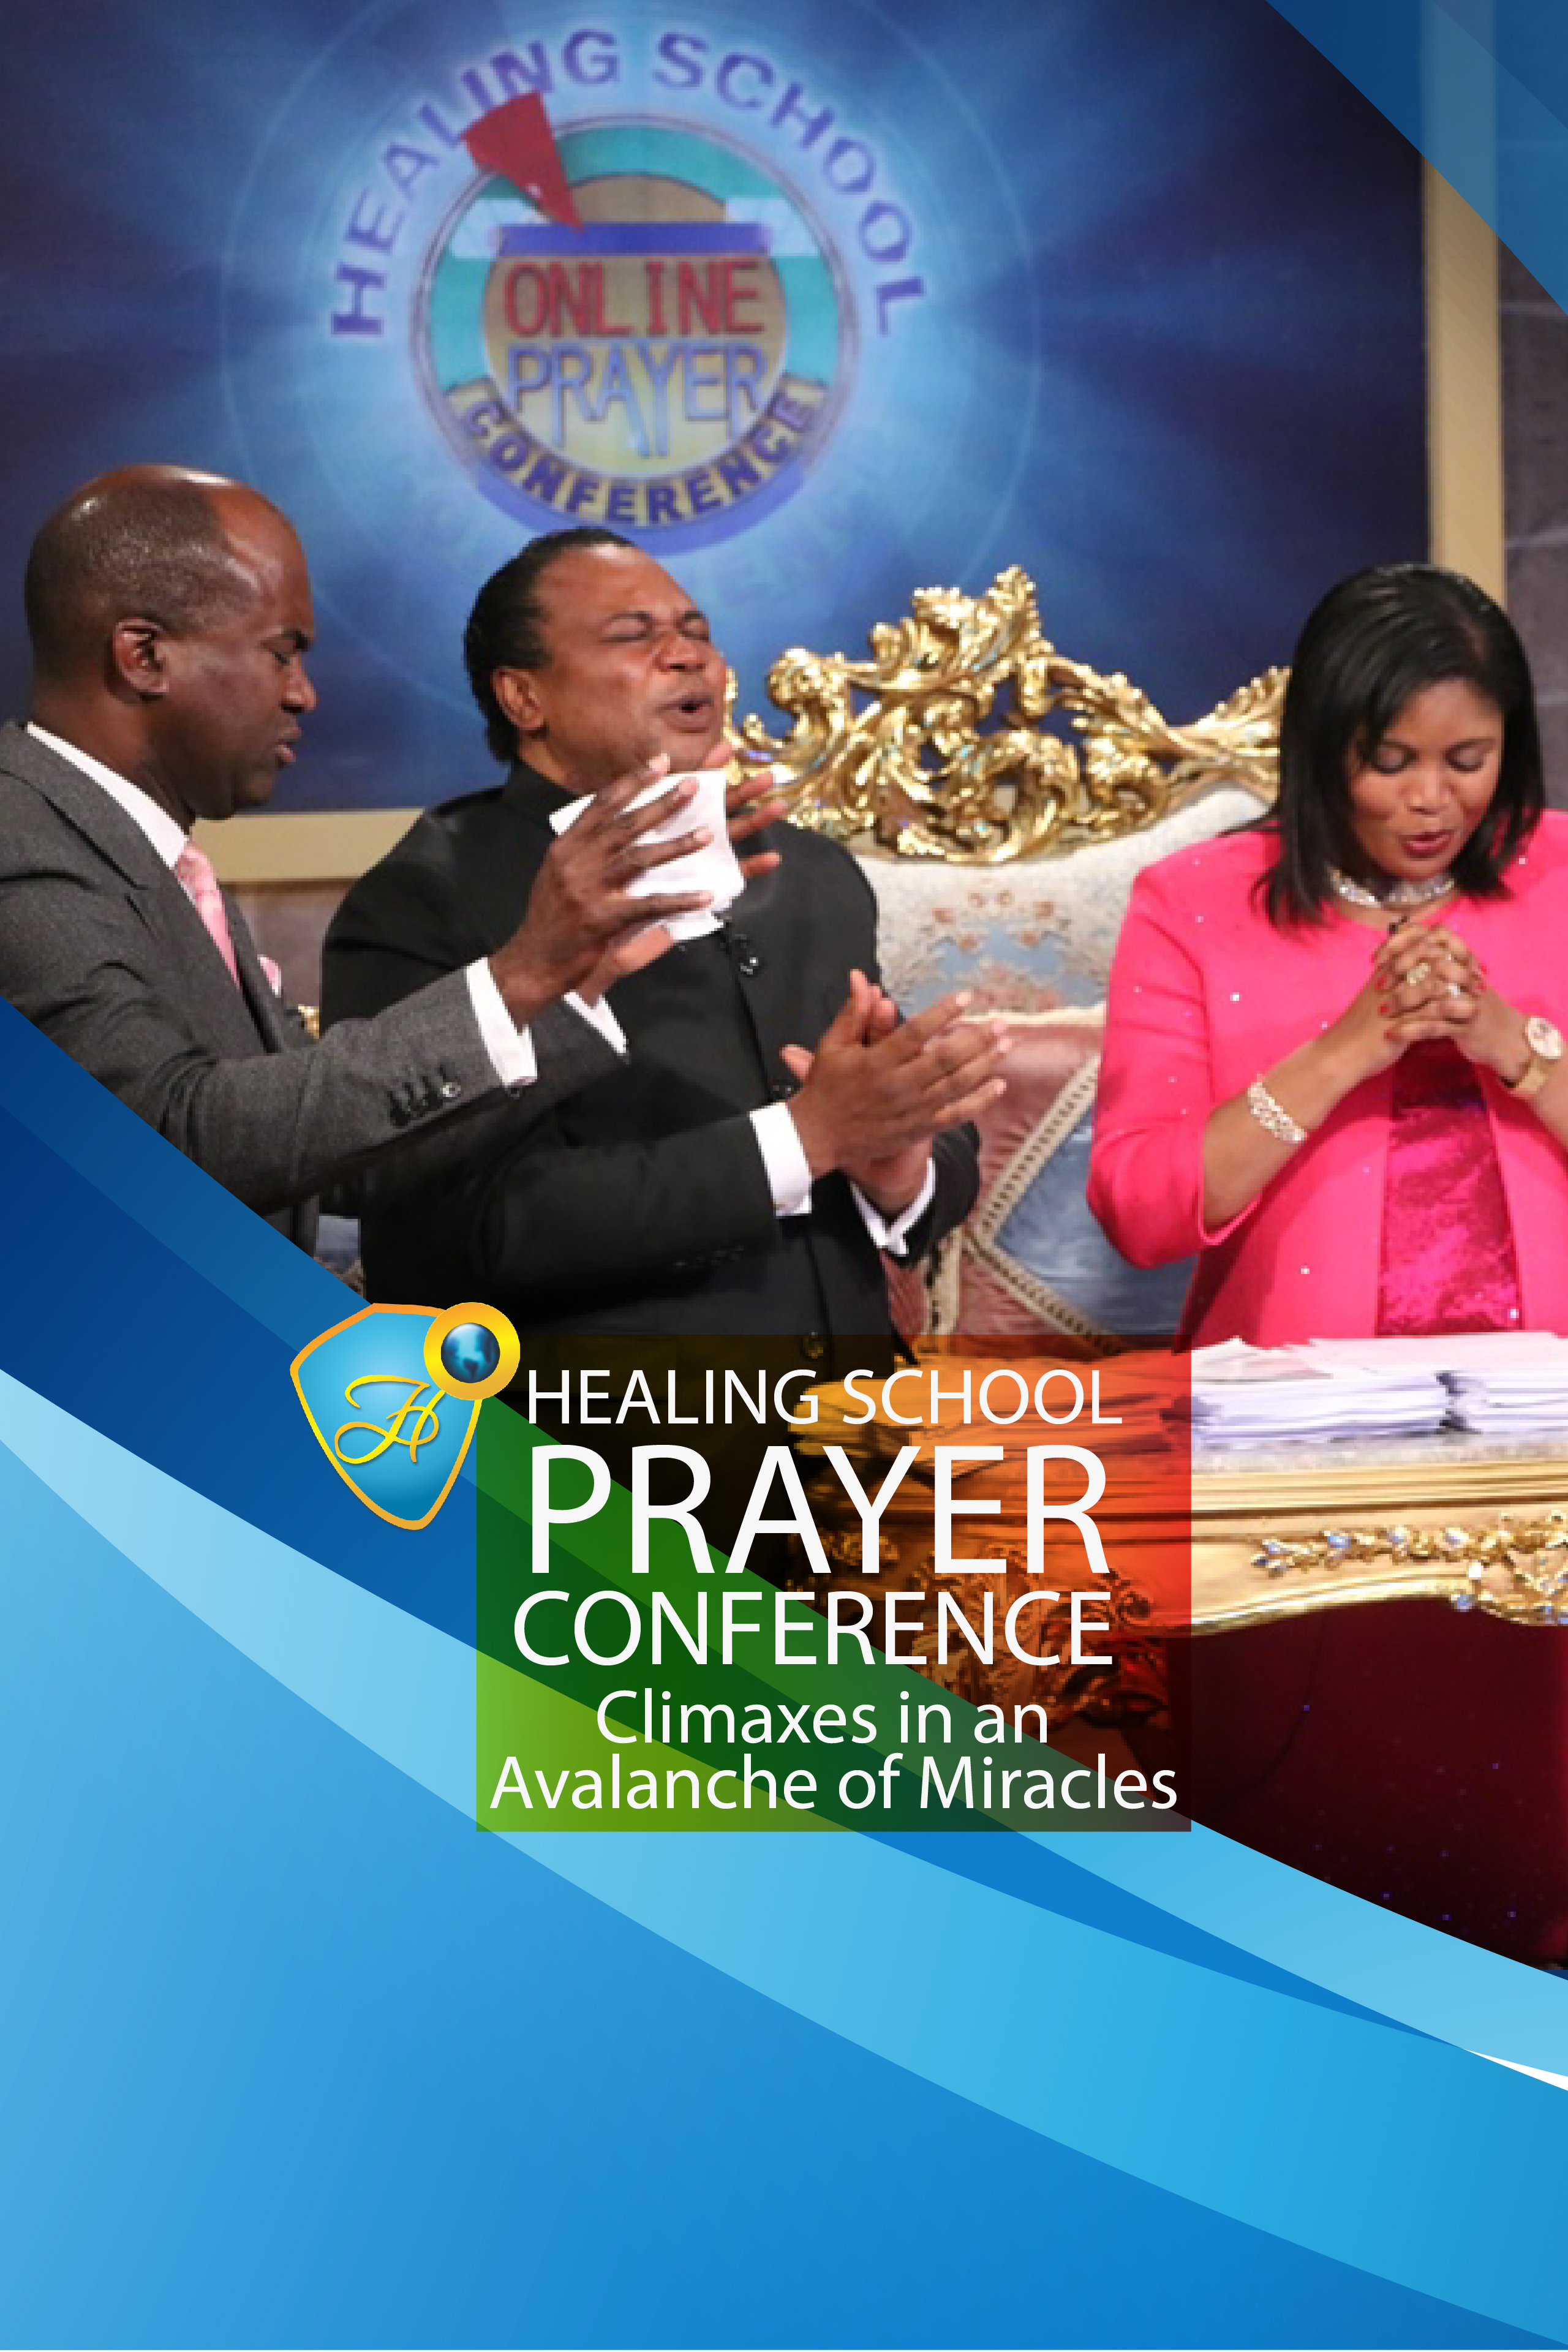 HEALING SCHOOL PRAYER CONFERENCE CLIMAXES IN AN AVALANCHE OF MIRACLES